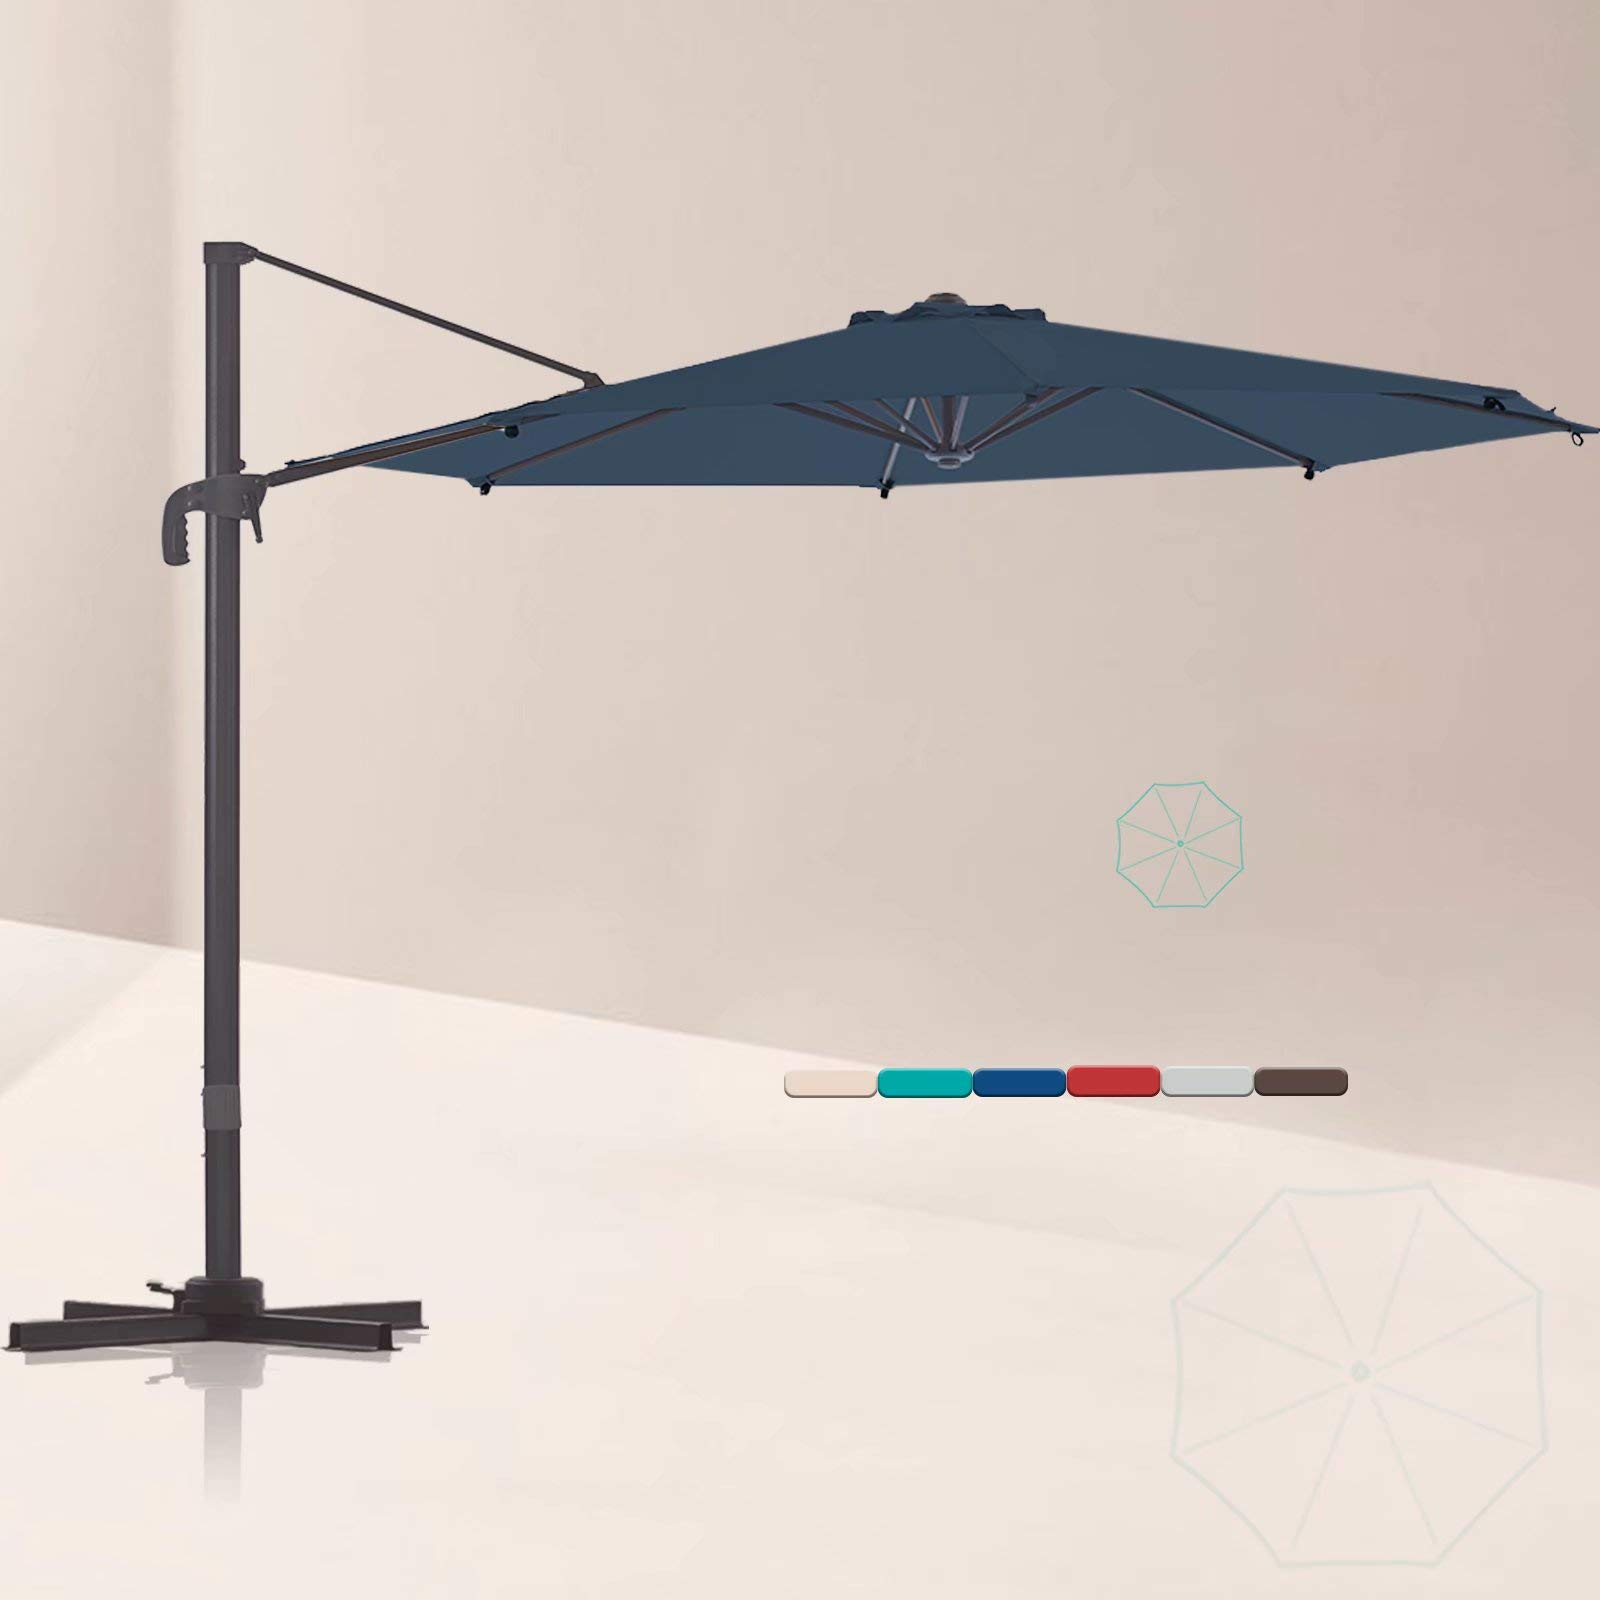 LE CONTE 10 ft. Cantilever Umbrella with 360 Degree Rotation | Outdoor Aluminum Offset Patio Umbrella Market Hanging Umbrellas | Solution Dyed Fabric, Integrated Tilting and Cross Base (Classic Blue)